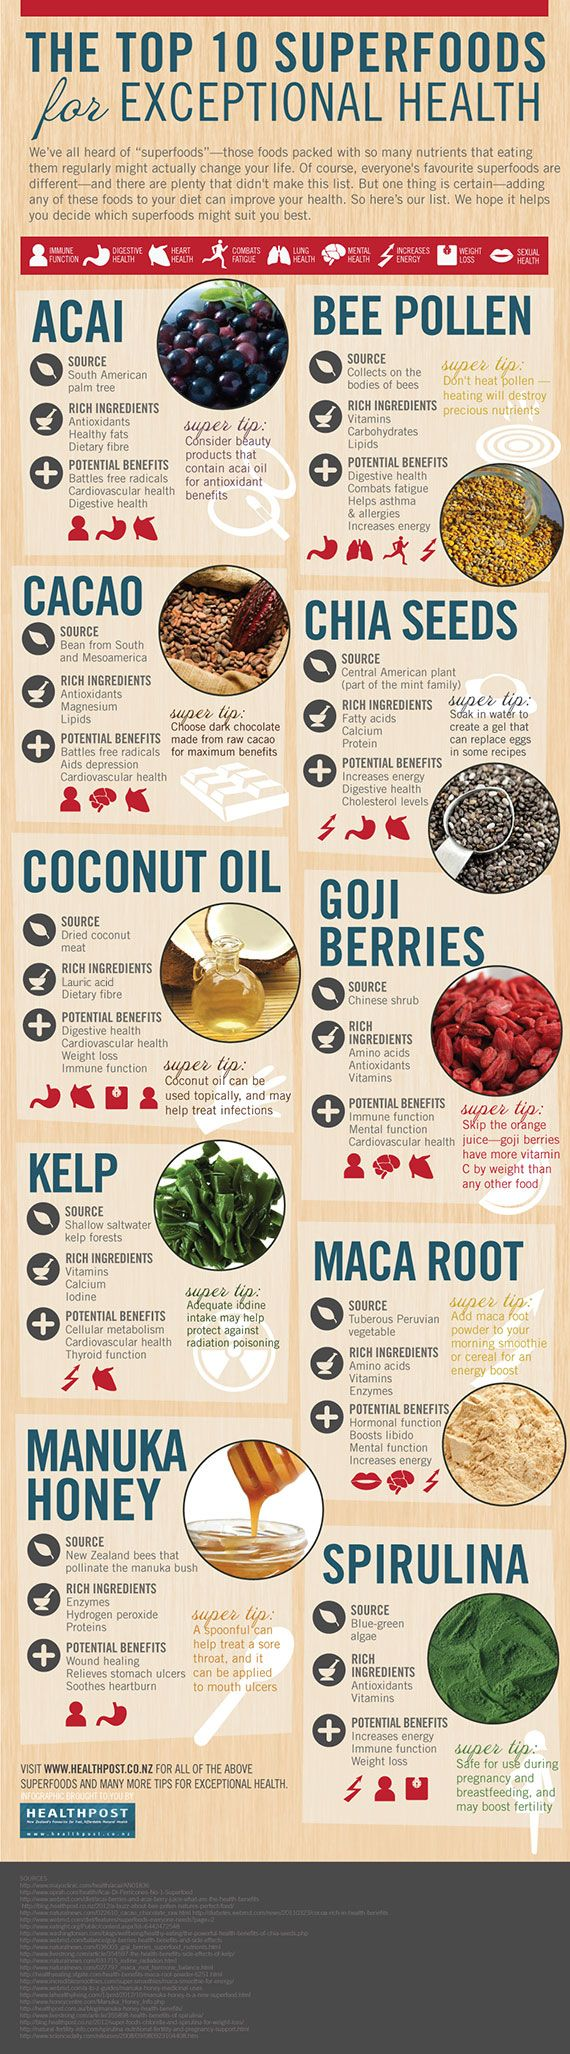 Even though superfoods don't exist.....and buying this product is a total waste of money, the benefits of these foods are mostly real.